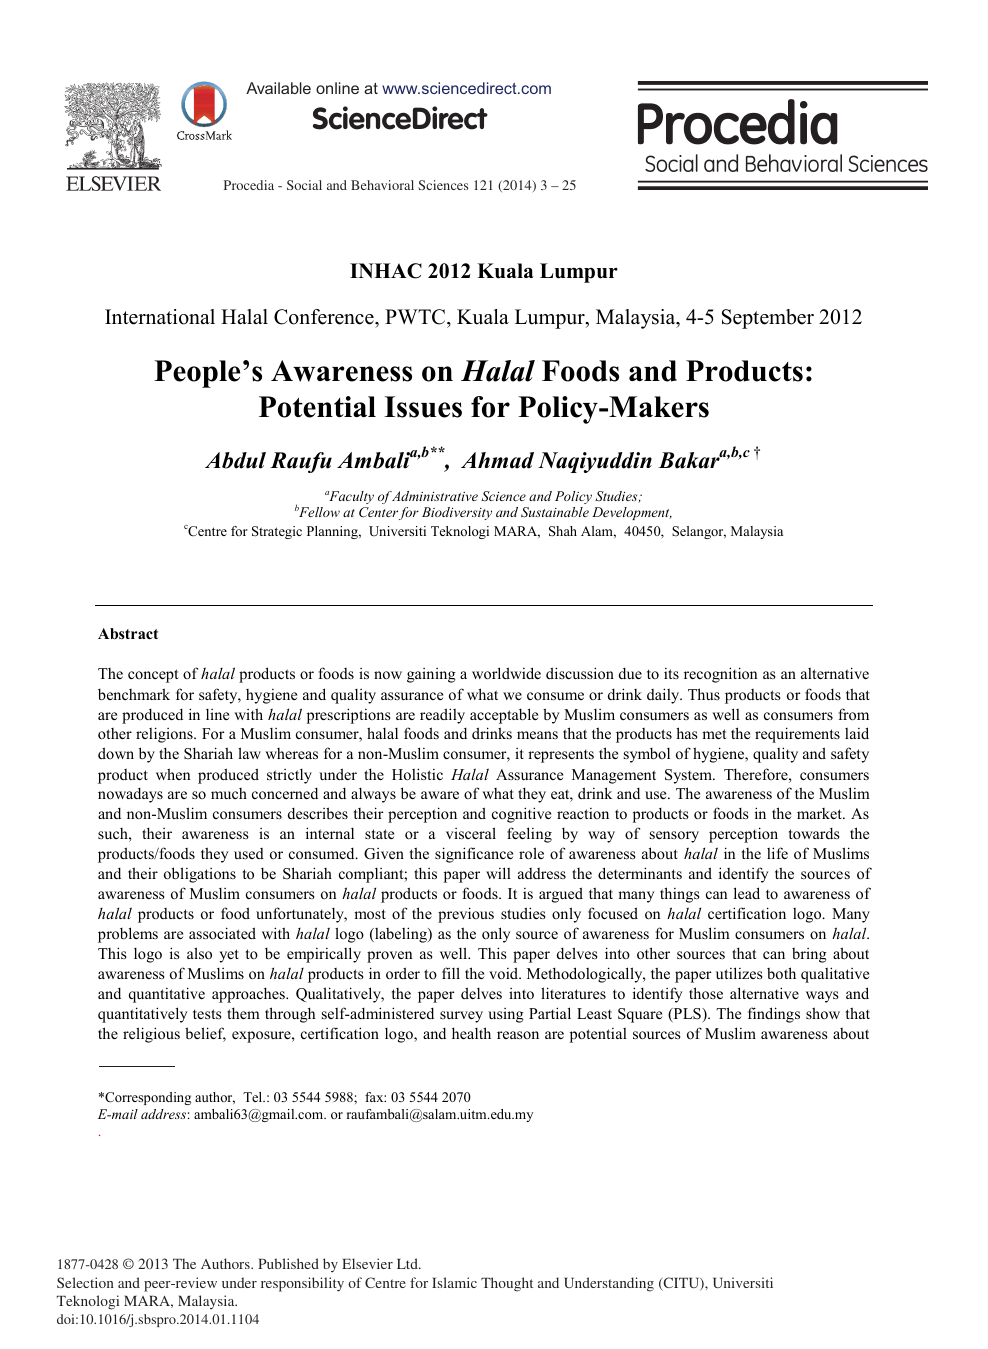 People's Awareness on Halal Foods and Products: Potential